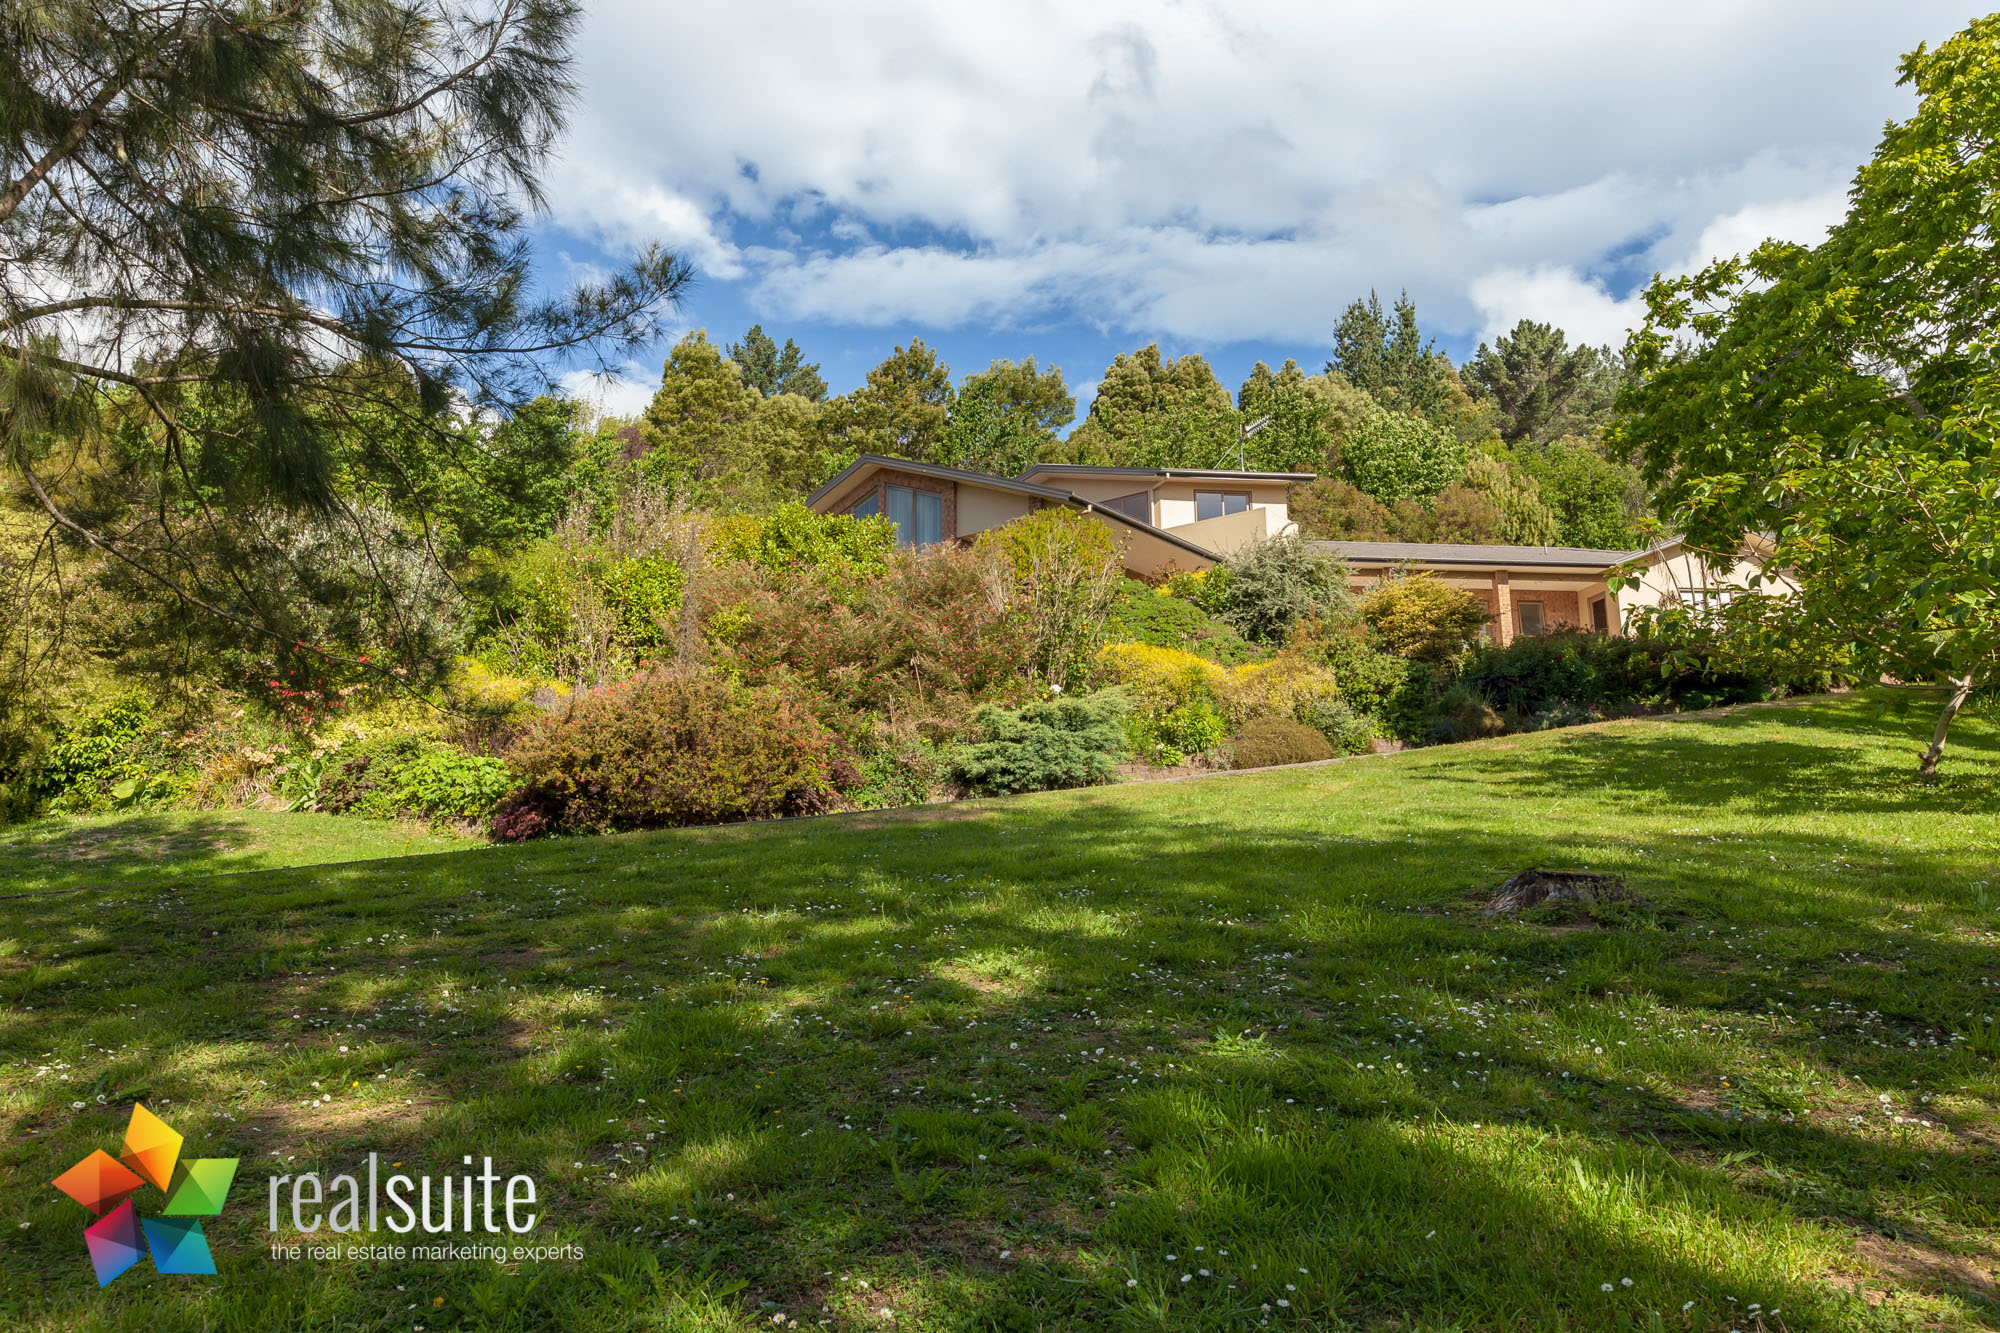 156 Mangaroa Valley Road, Mangaroa 5687